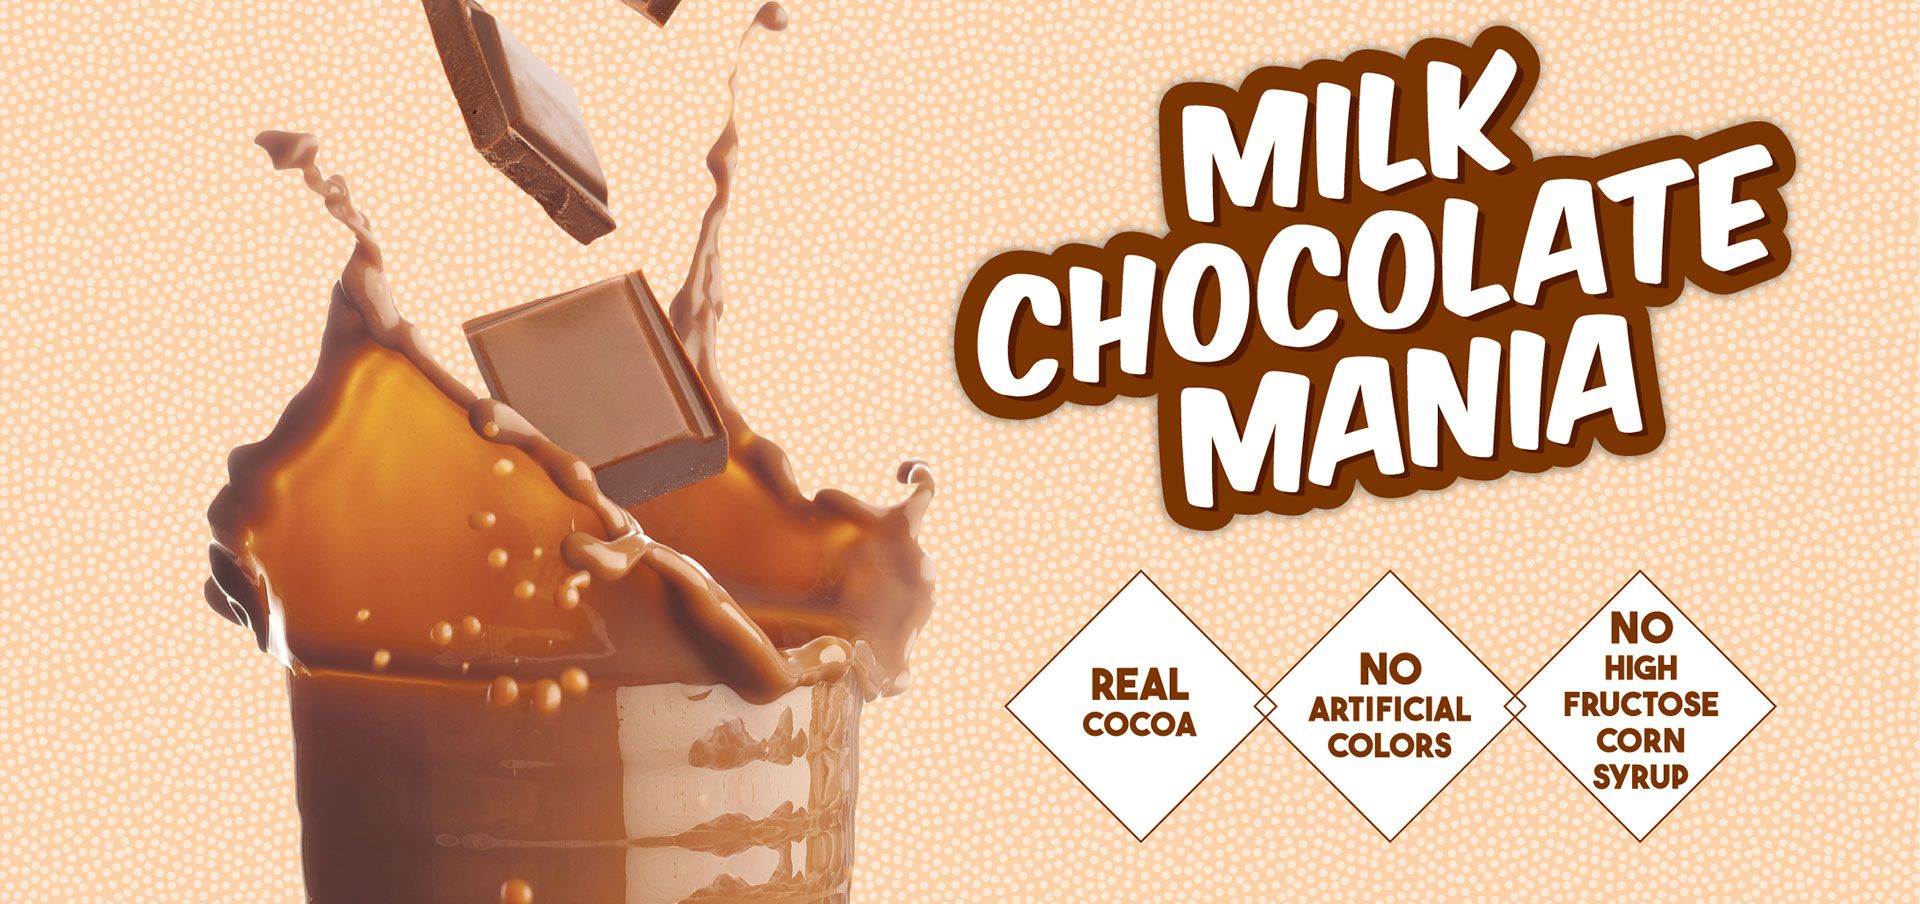 milk chocolate mania label image